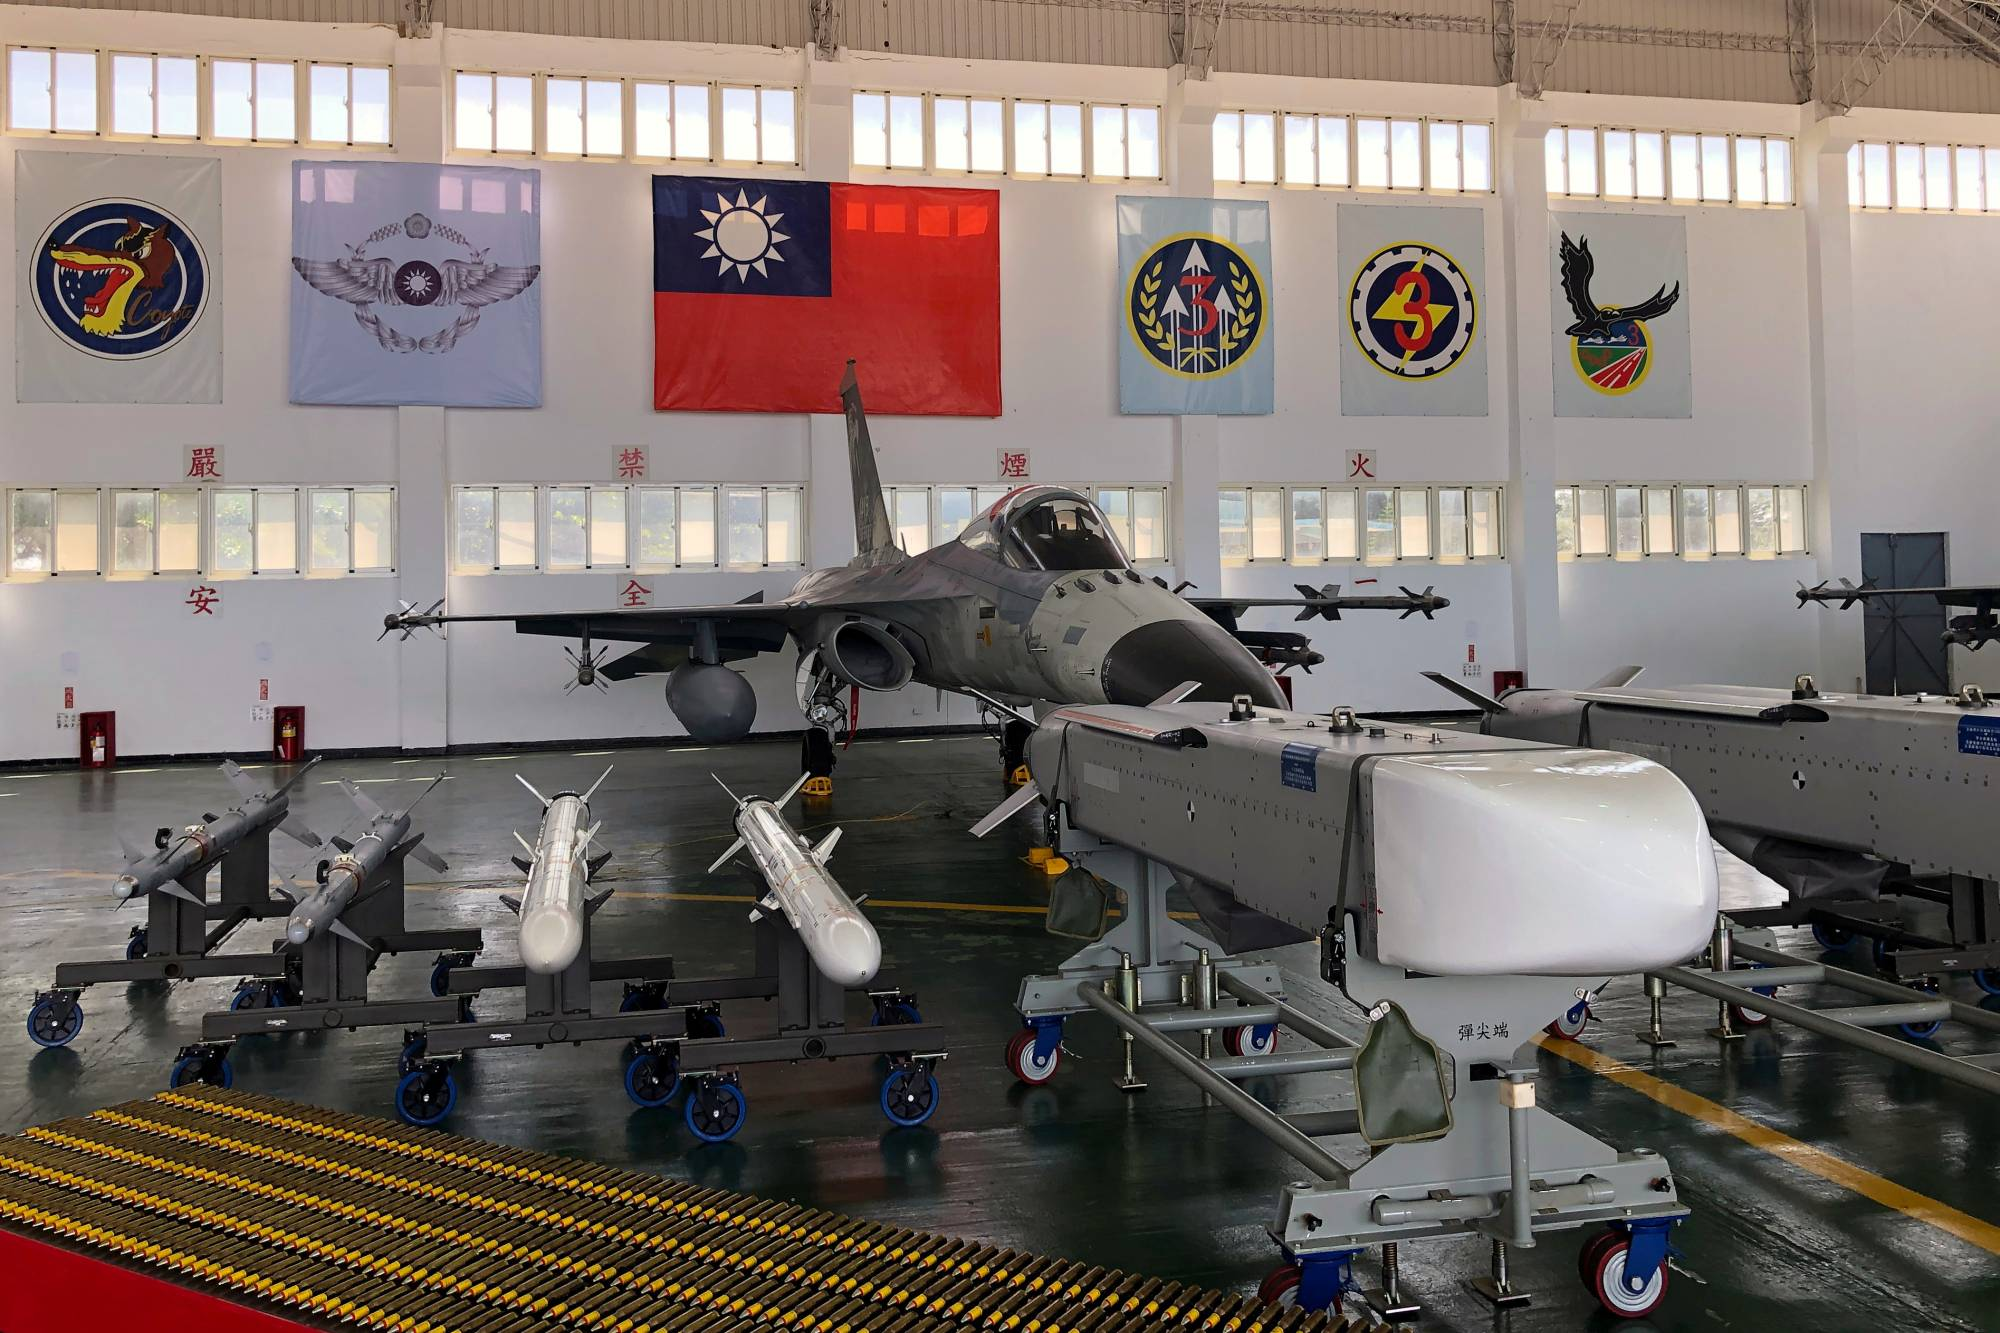 An Indigenous Defense Fighter (IDF) fighter jet and missiles are seen at Makung Air Force Base in Taiwan's offshore island of Penghu last September. | REUTERS